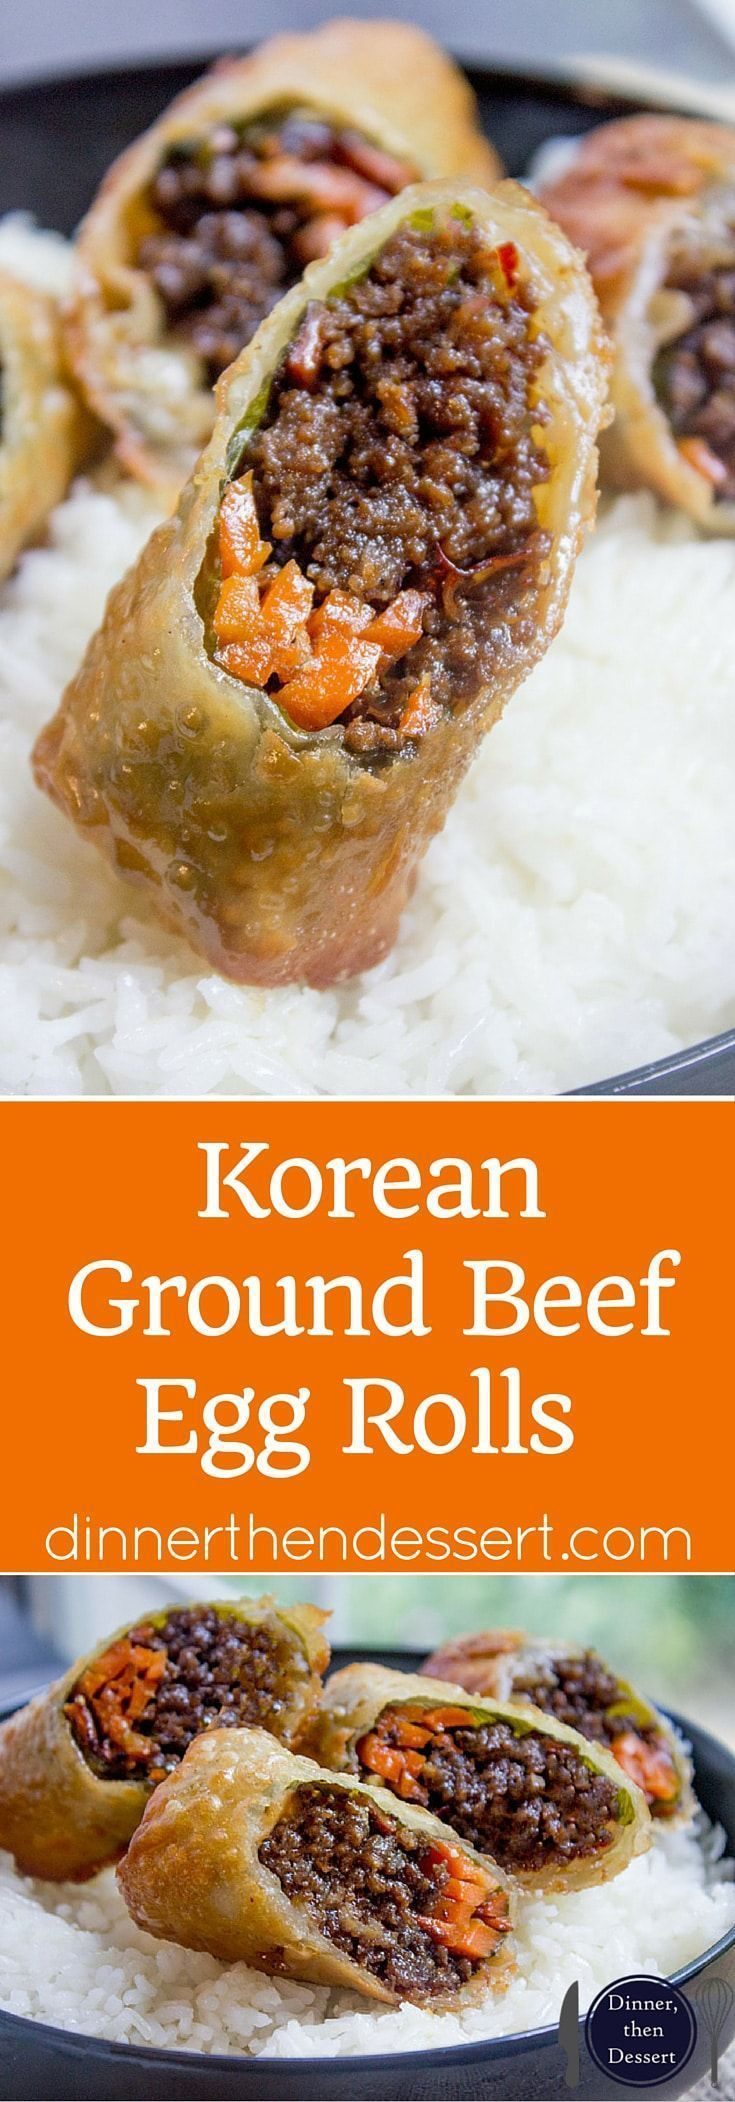 Korean Ground Beef Egg Rolls made with just a few ingredients are a great party food and perfect use of leftovers! | Dinner, Then Dessert